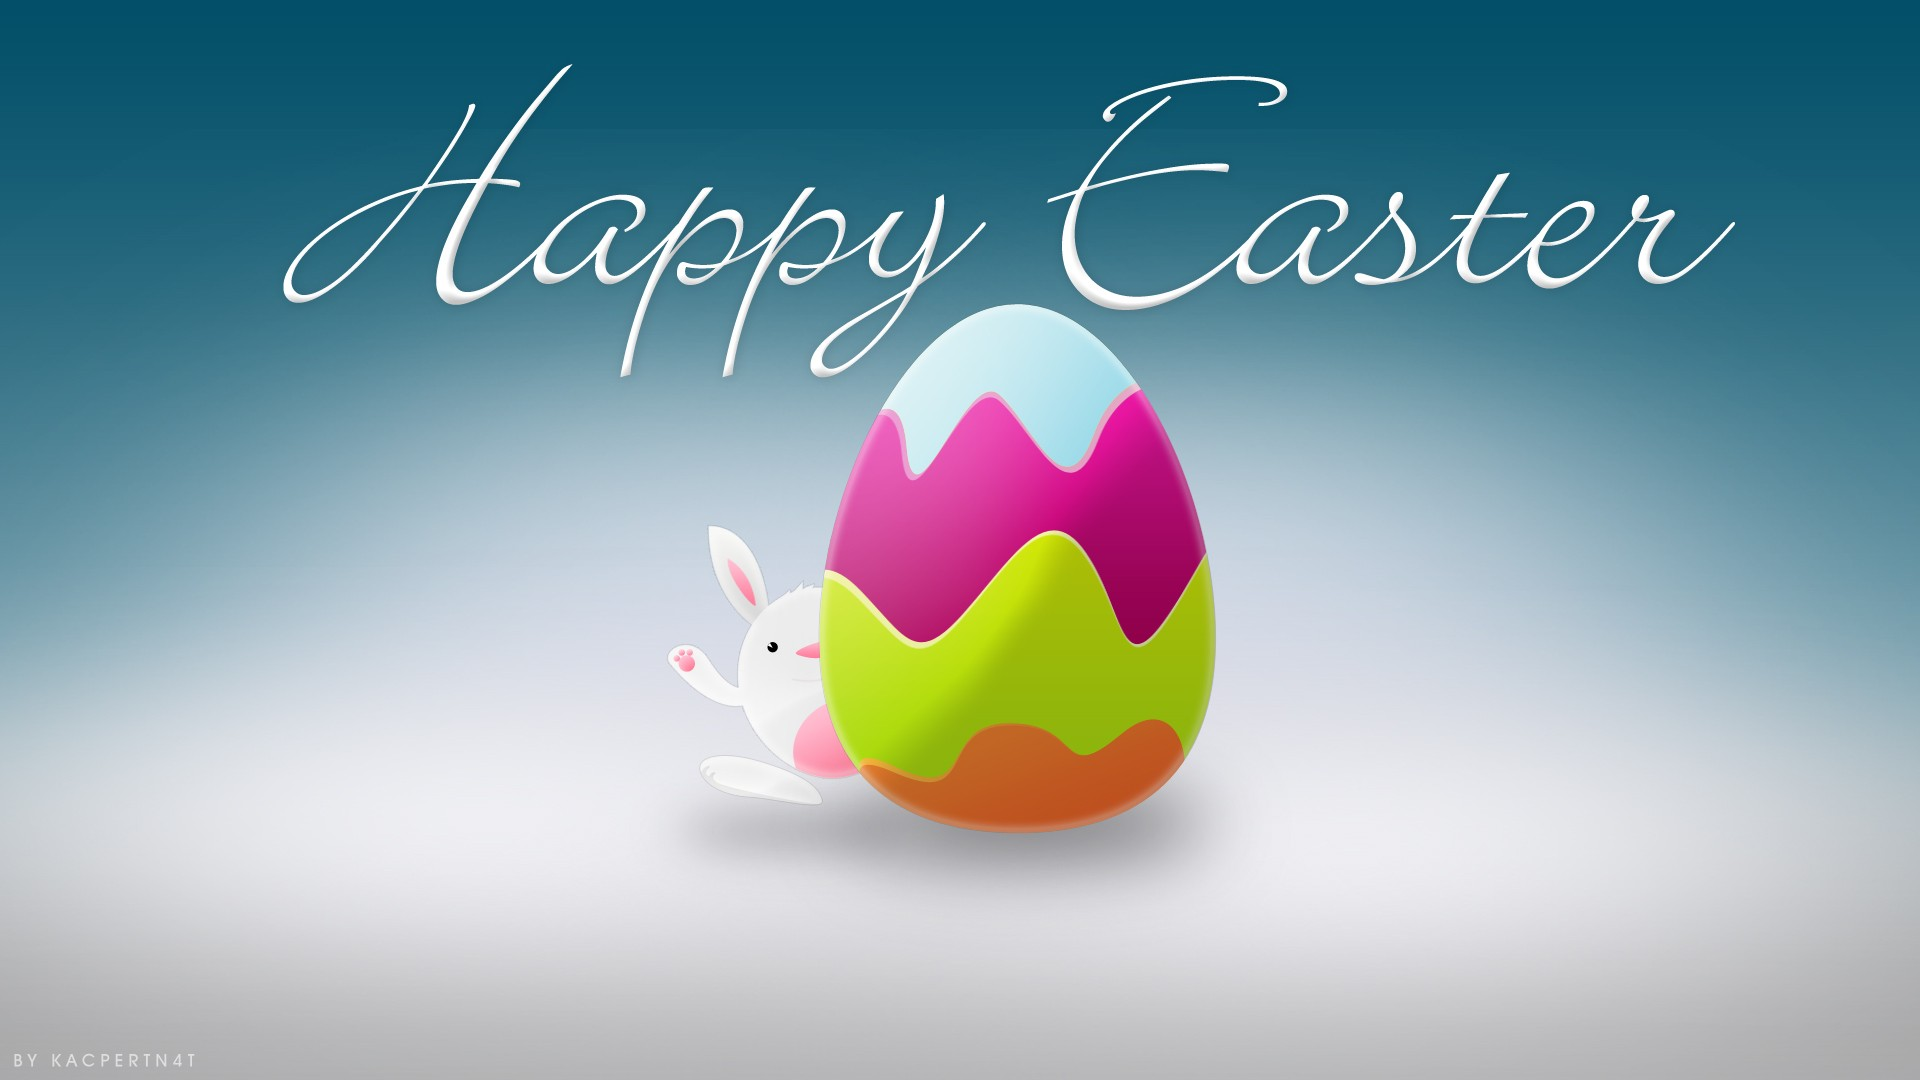 Happy Easter Photos for Facebook Download 1920x1080